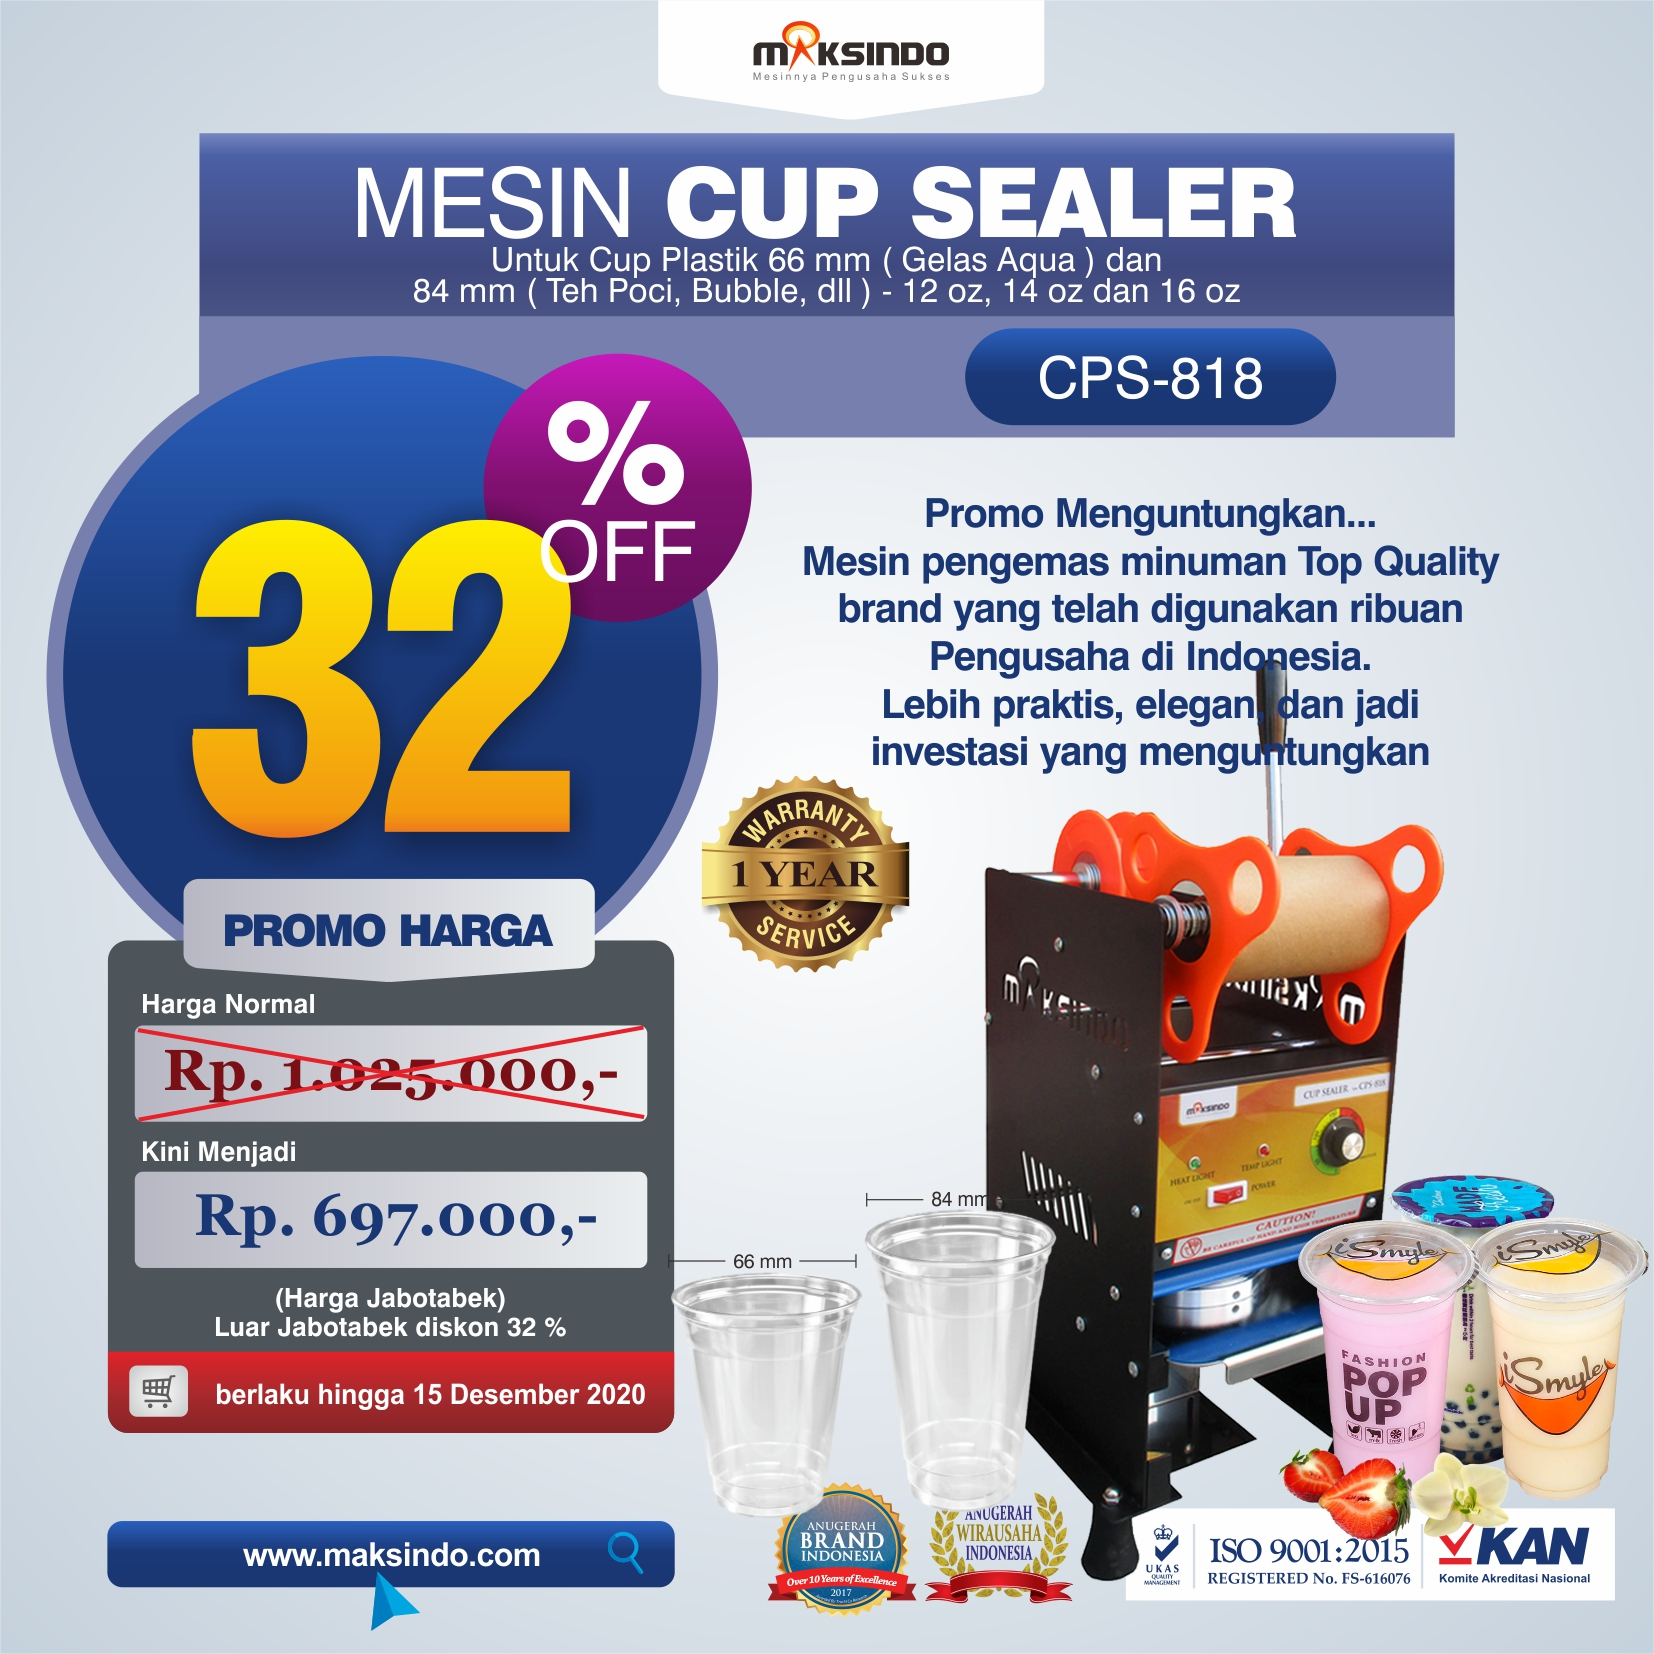 Jual Mesin Cup Sealer Manual New Di Semarang